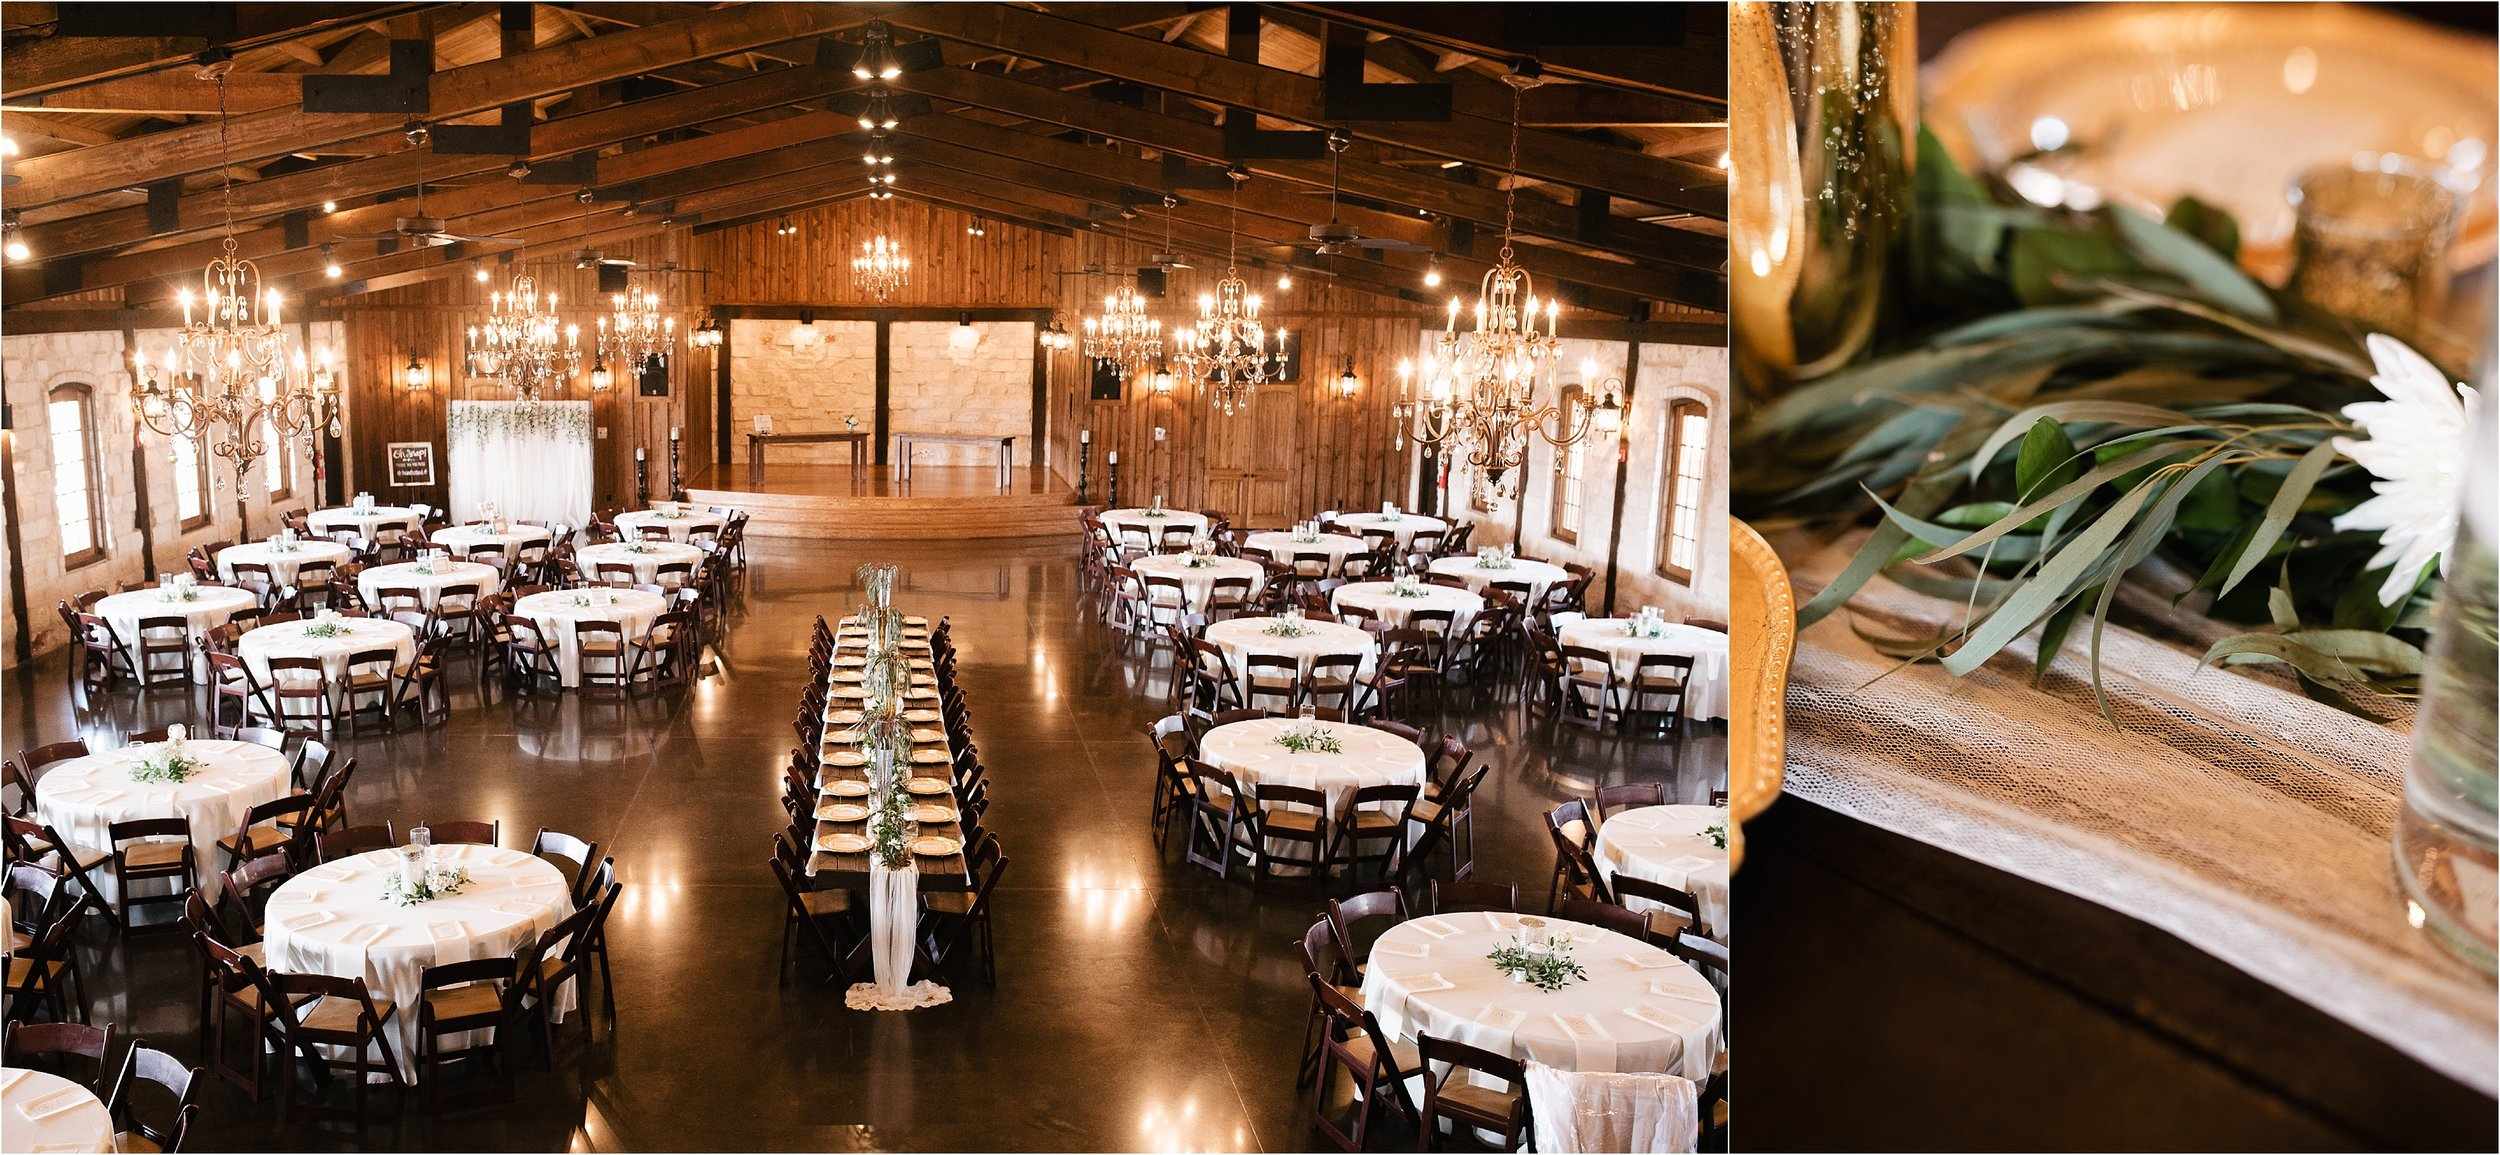 wedding photographer oklahoma reception decorations decor champagne table arrangements